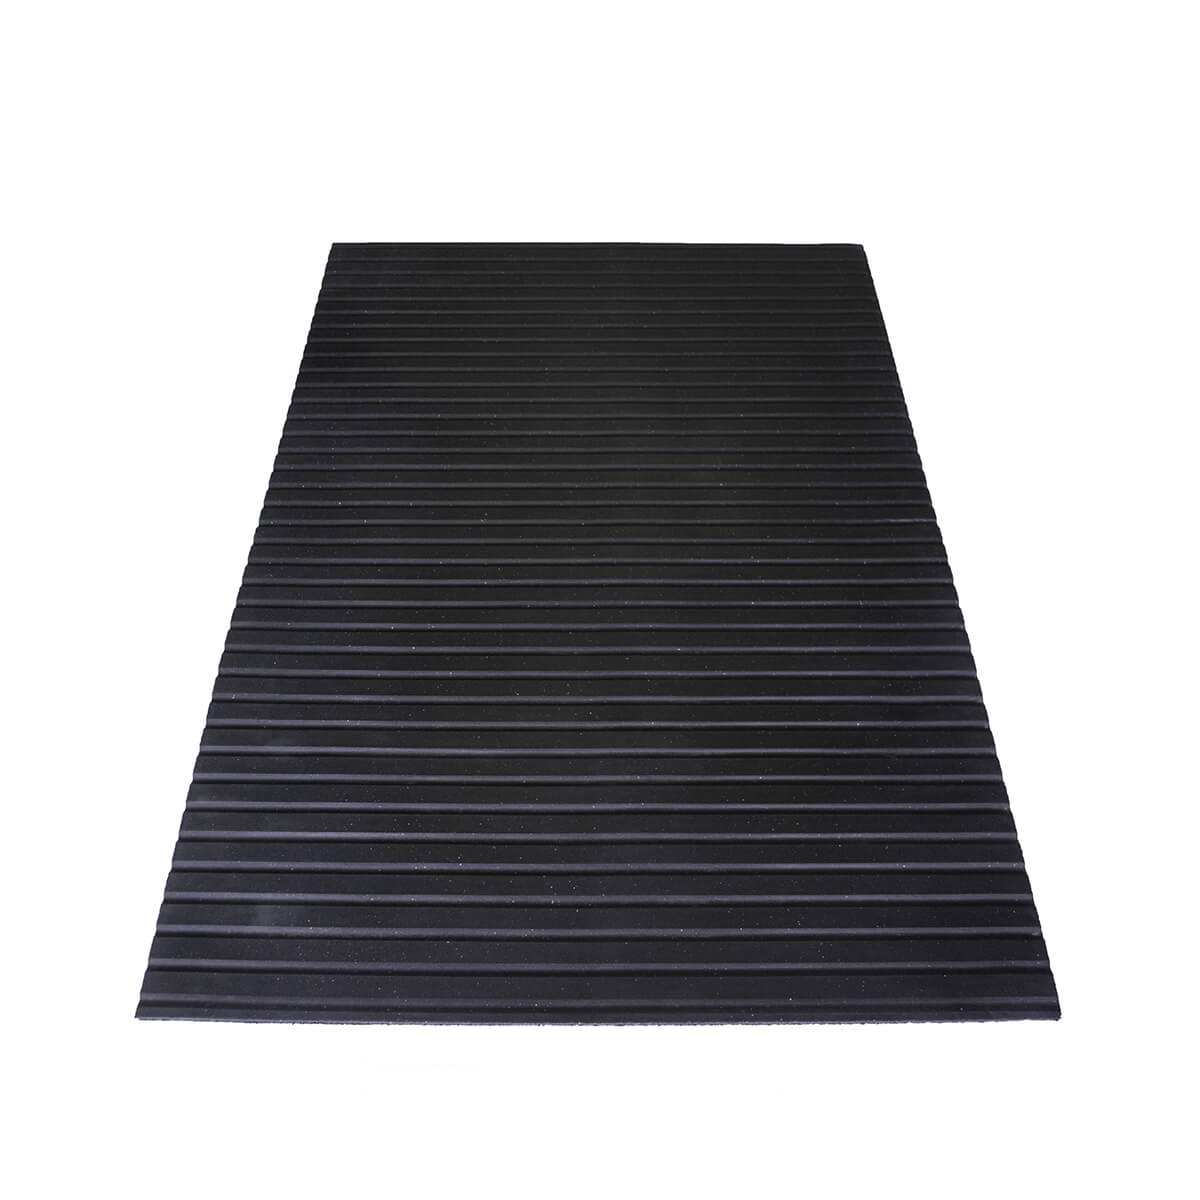 Trailer Mat - Ribbed - 5-ftx7-ftx1/2-in